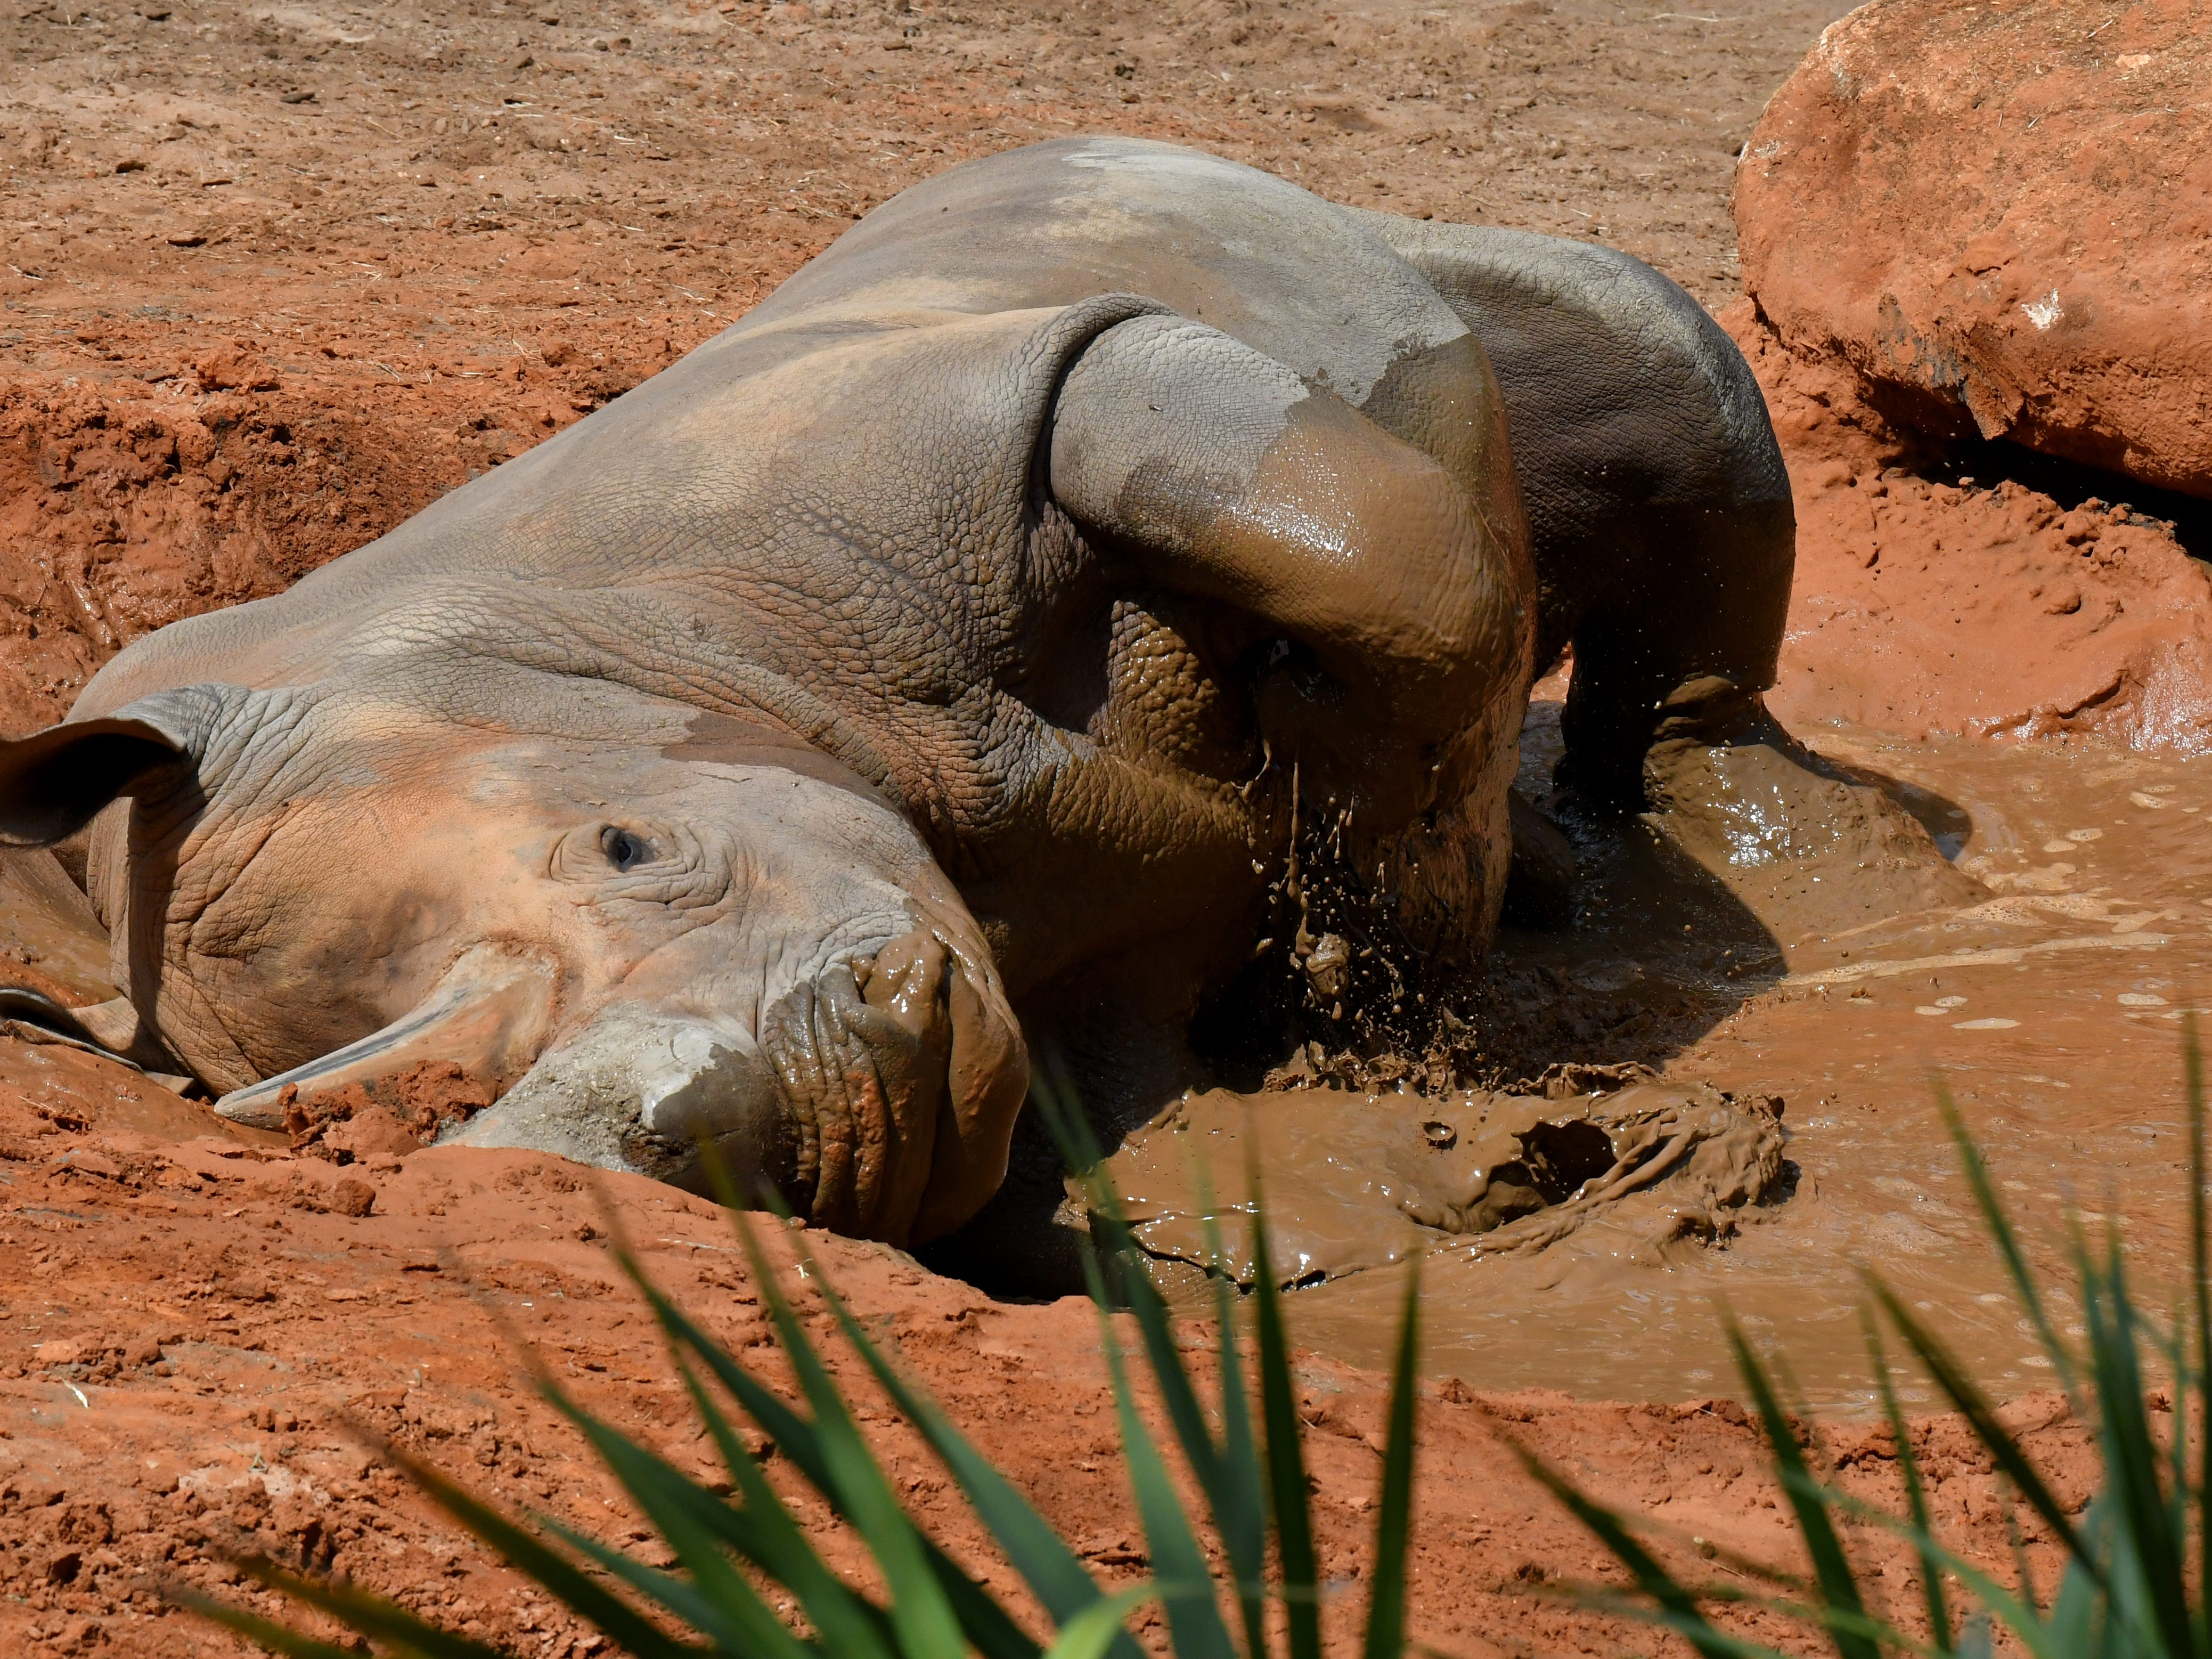 Mud bath at the Rhino Encounter. The Brevard Zoo in Viera is a popular visit for locals and tourists alike.